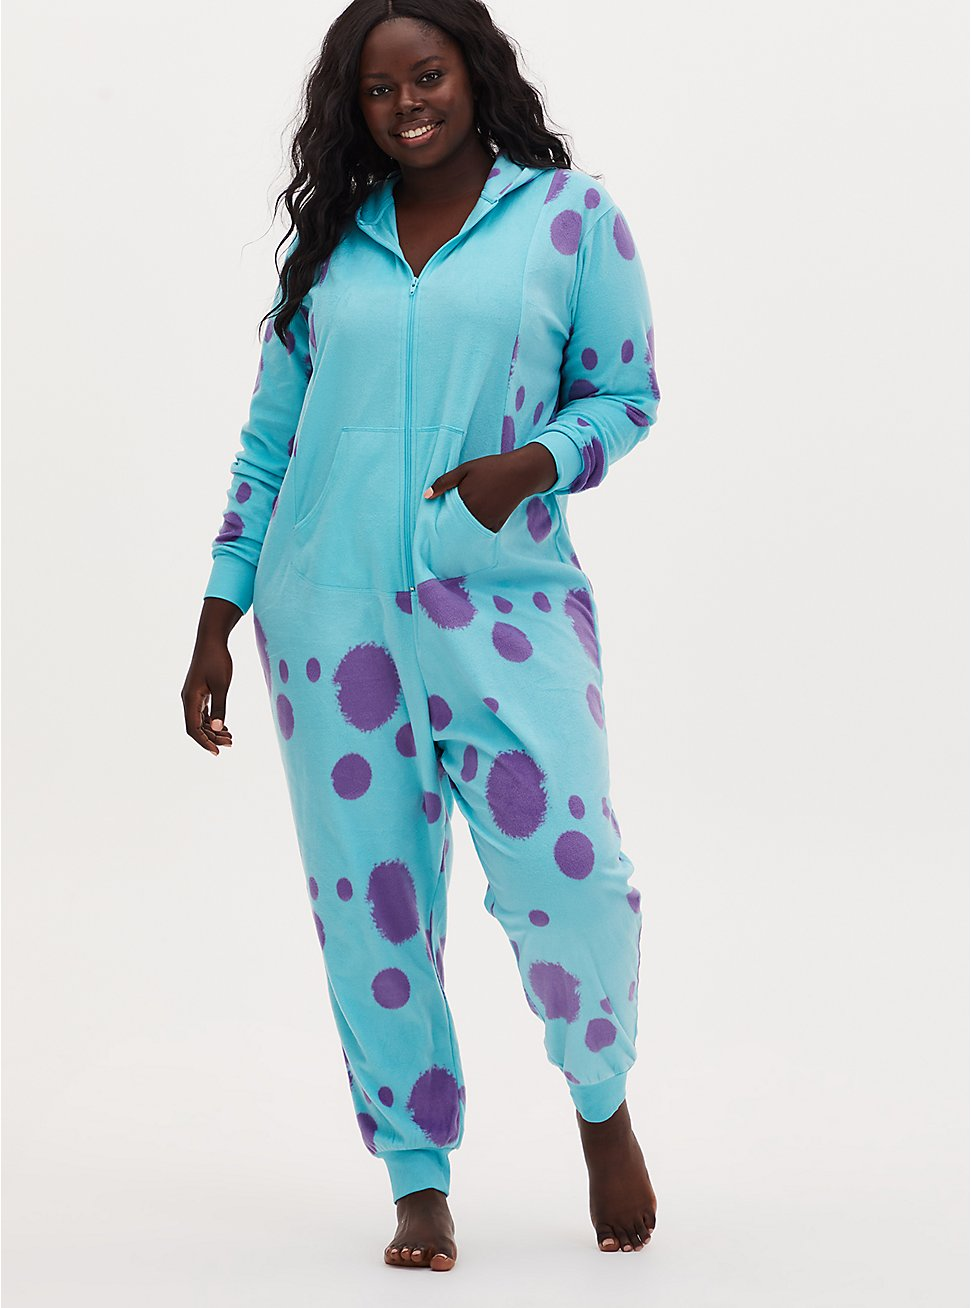 Disney Pixar Monsters, Inc. Sulley Aqua Fleece Onesie, MULTI, hi-res